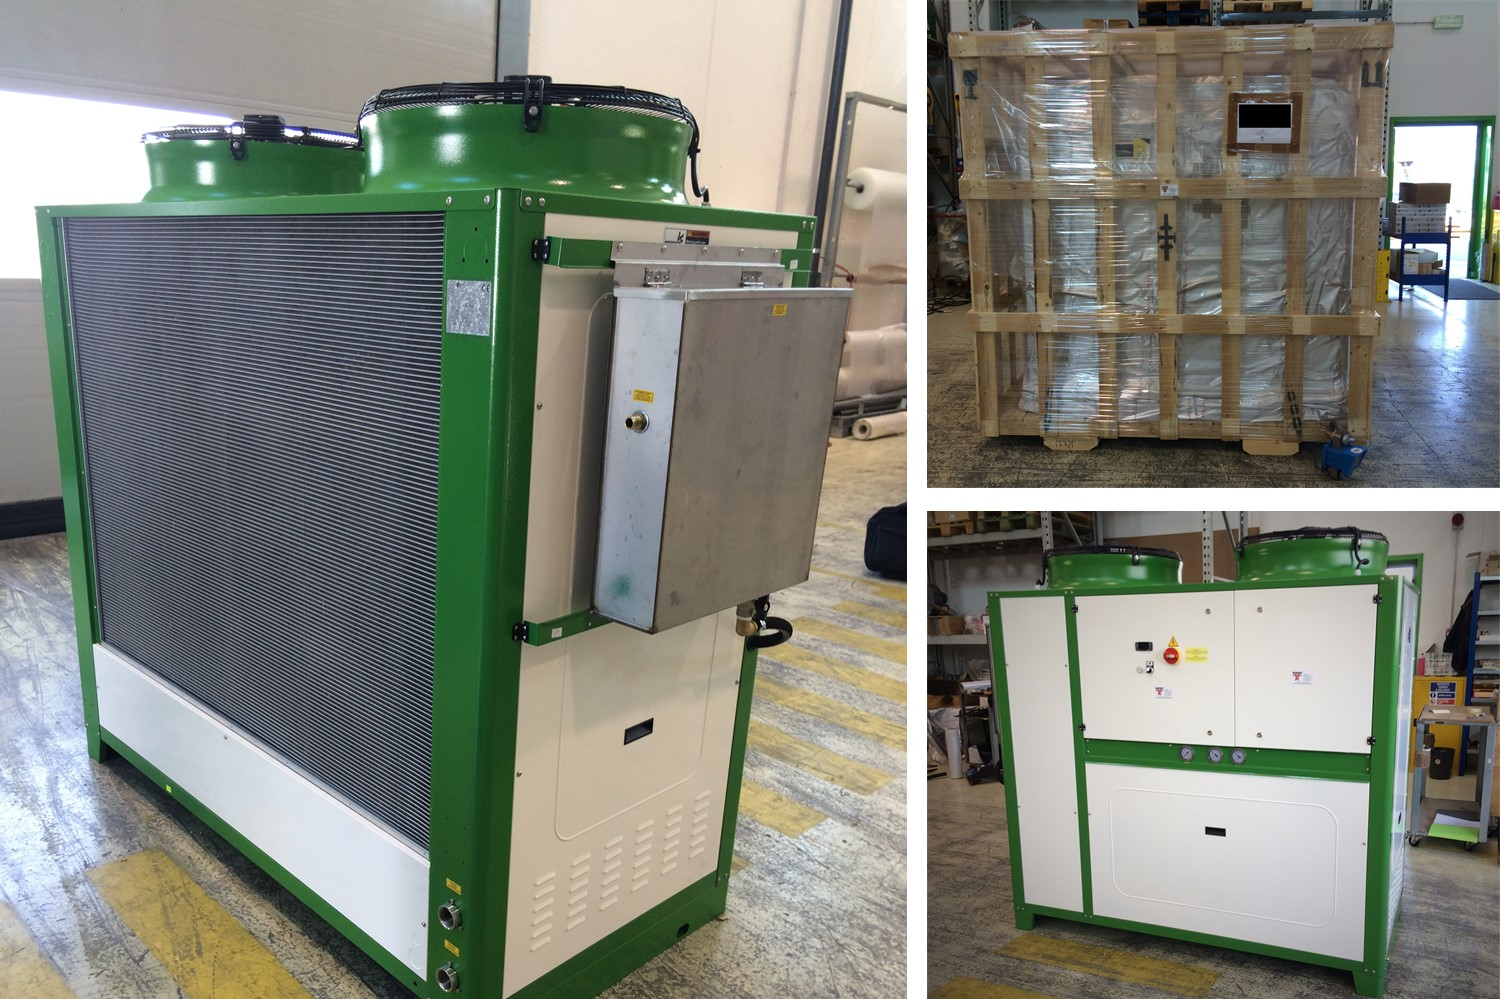 6.paking_shipment_Air cooled water chiller_CHIPWOOD PLANT